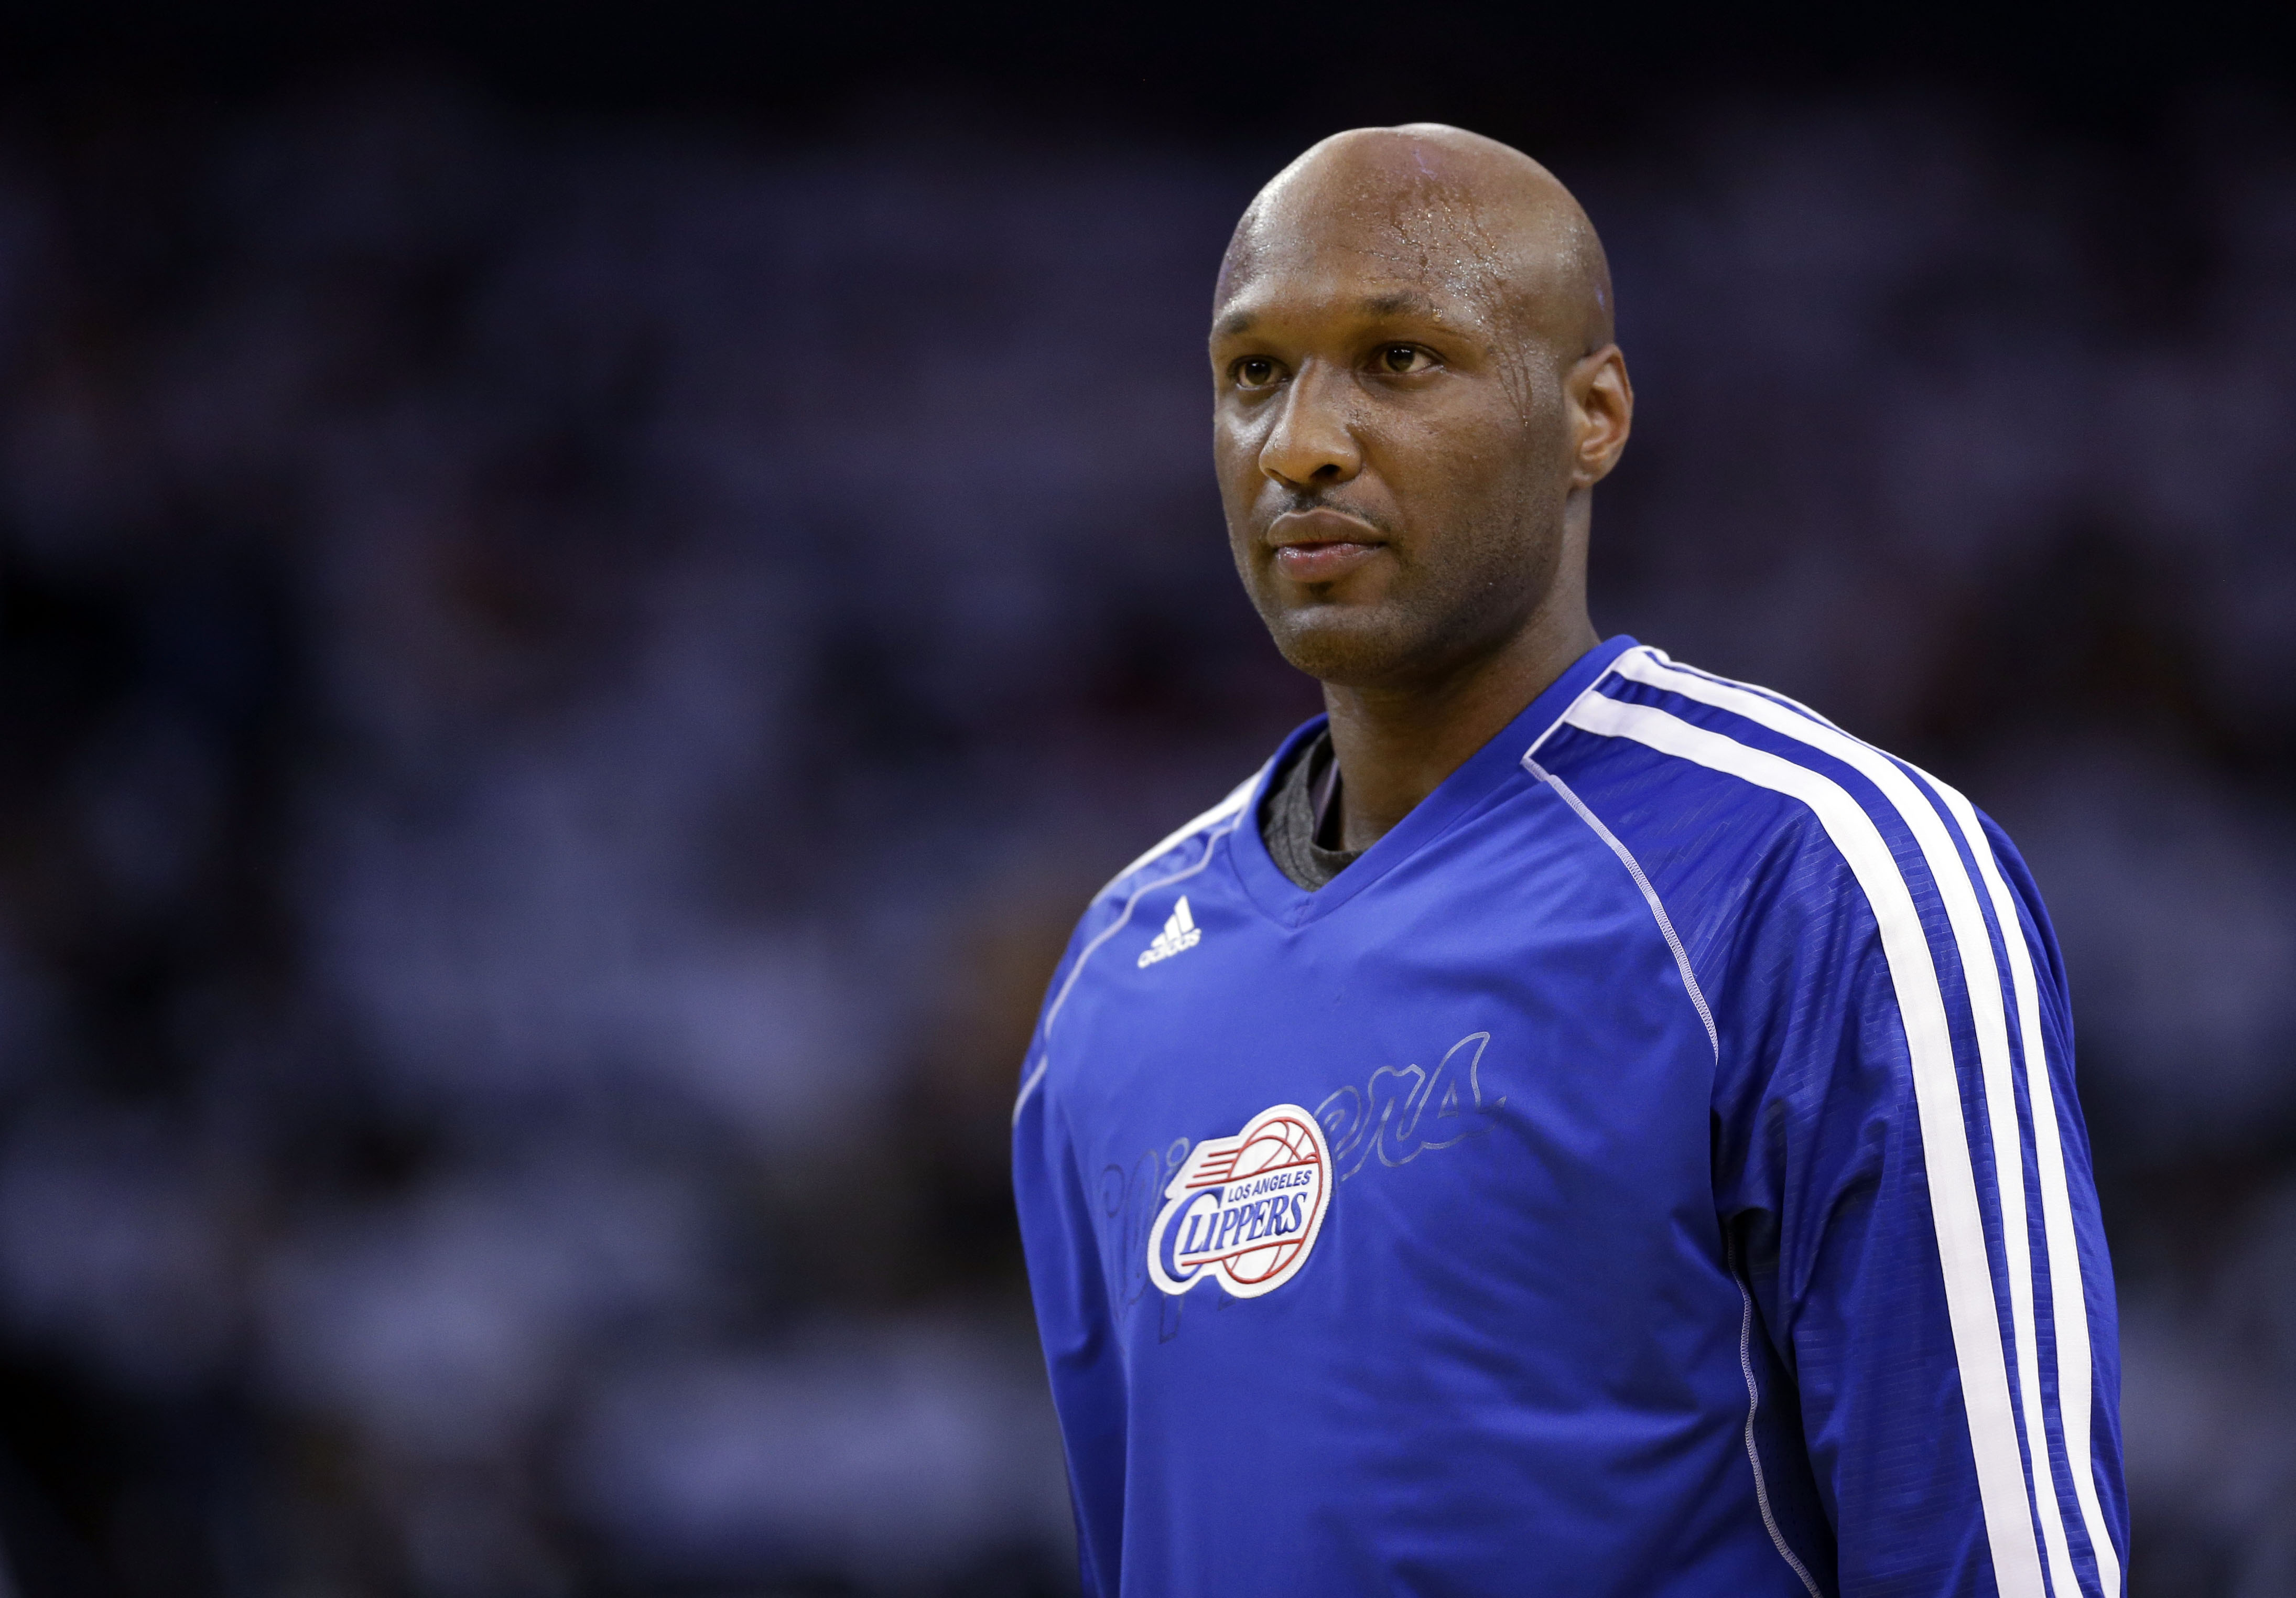 This  file photo shows Los Angeles Clippers' Lamar Odom (7) in action against the Golden State Warriors during an NBA basketball game in Oakland, Calif. on Jan. 2, 2013